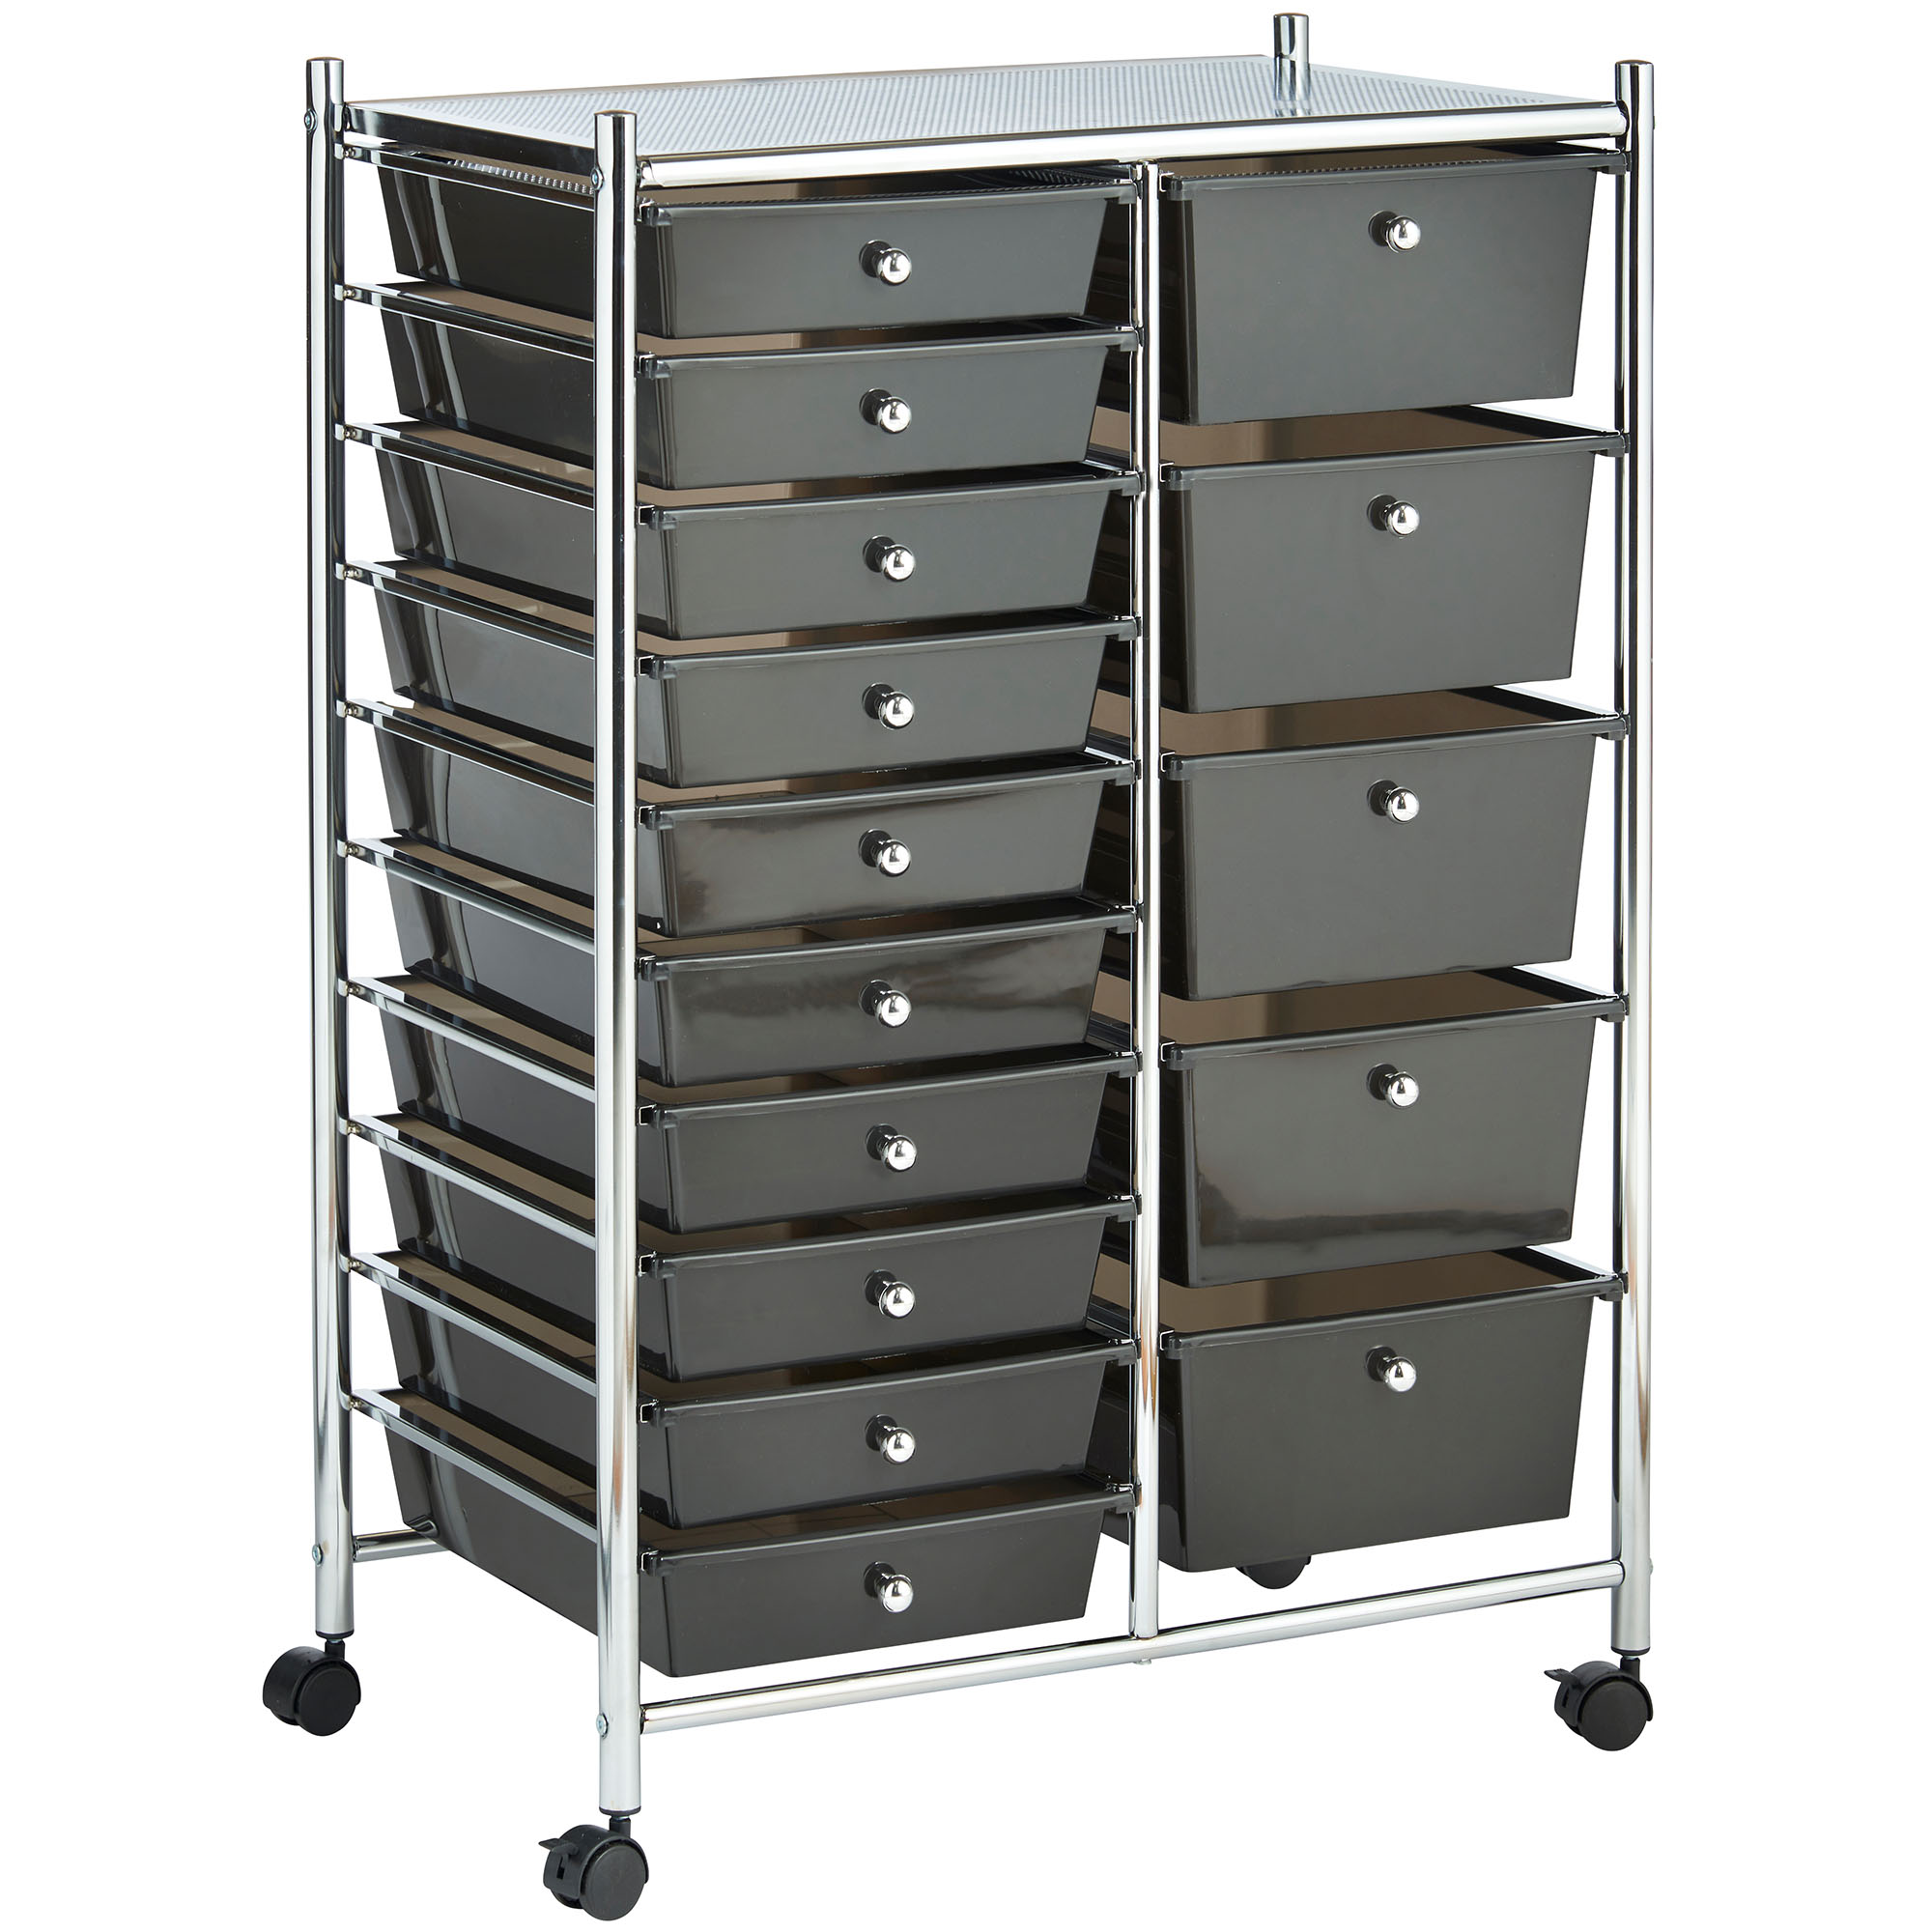 of affordable shelving tool cabinet drawers rolling units size crates full for systems mounted products storage wall design garage drawer